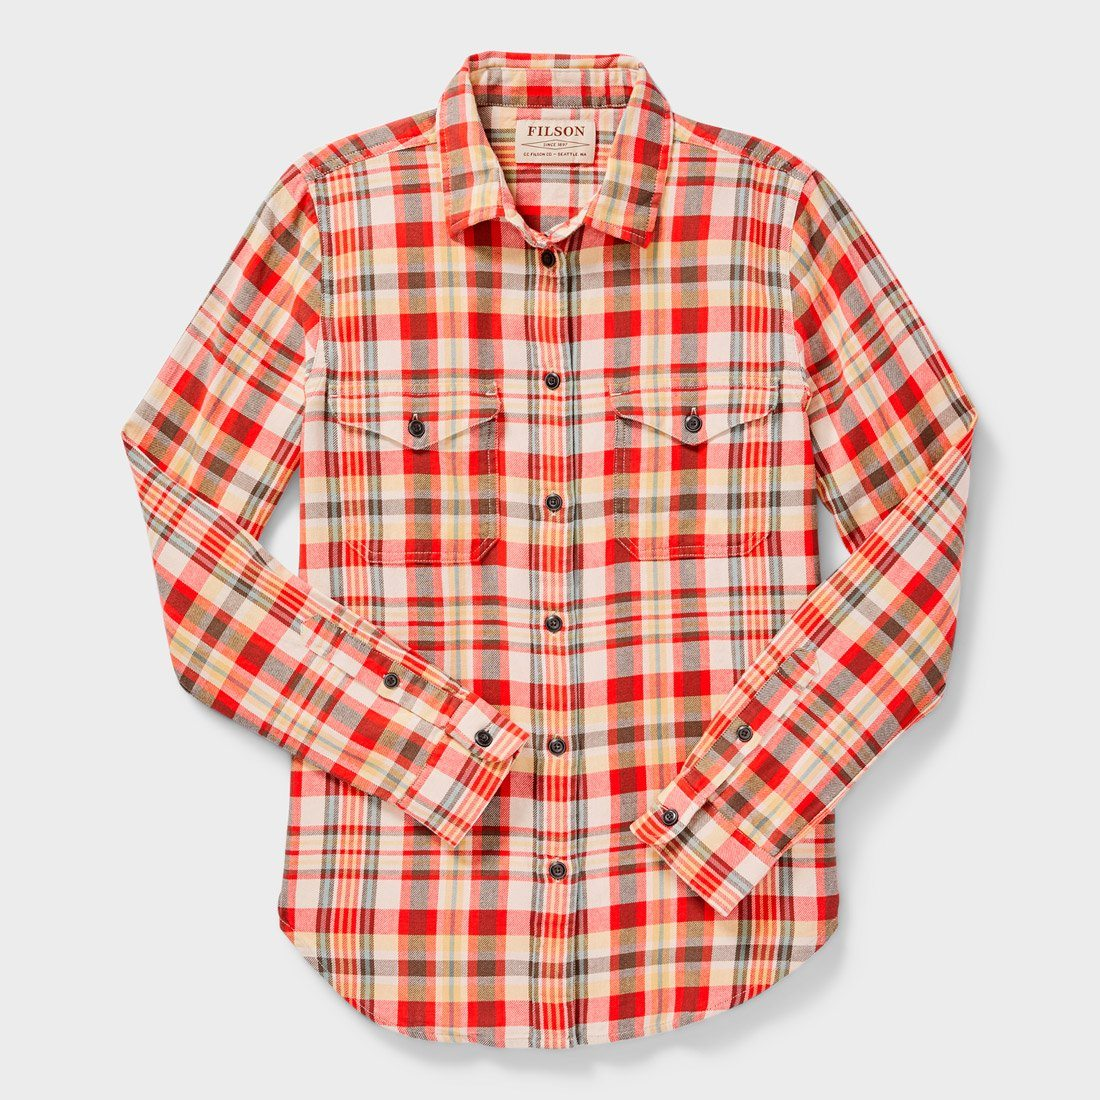 Filson Women's Scout Shirt Red/ White/ Gold